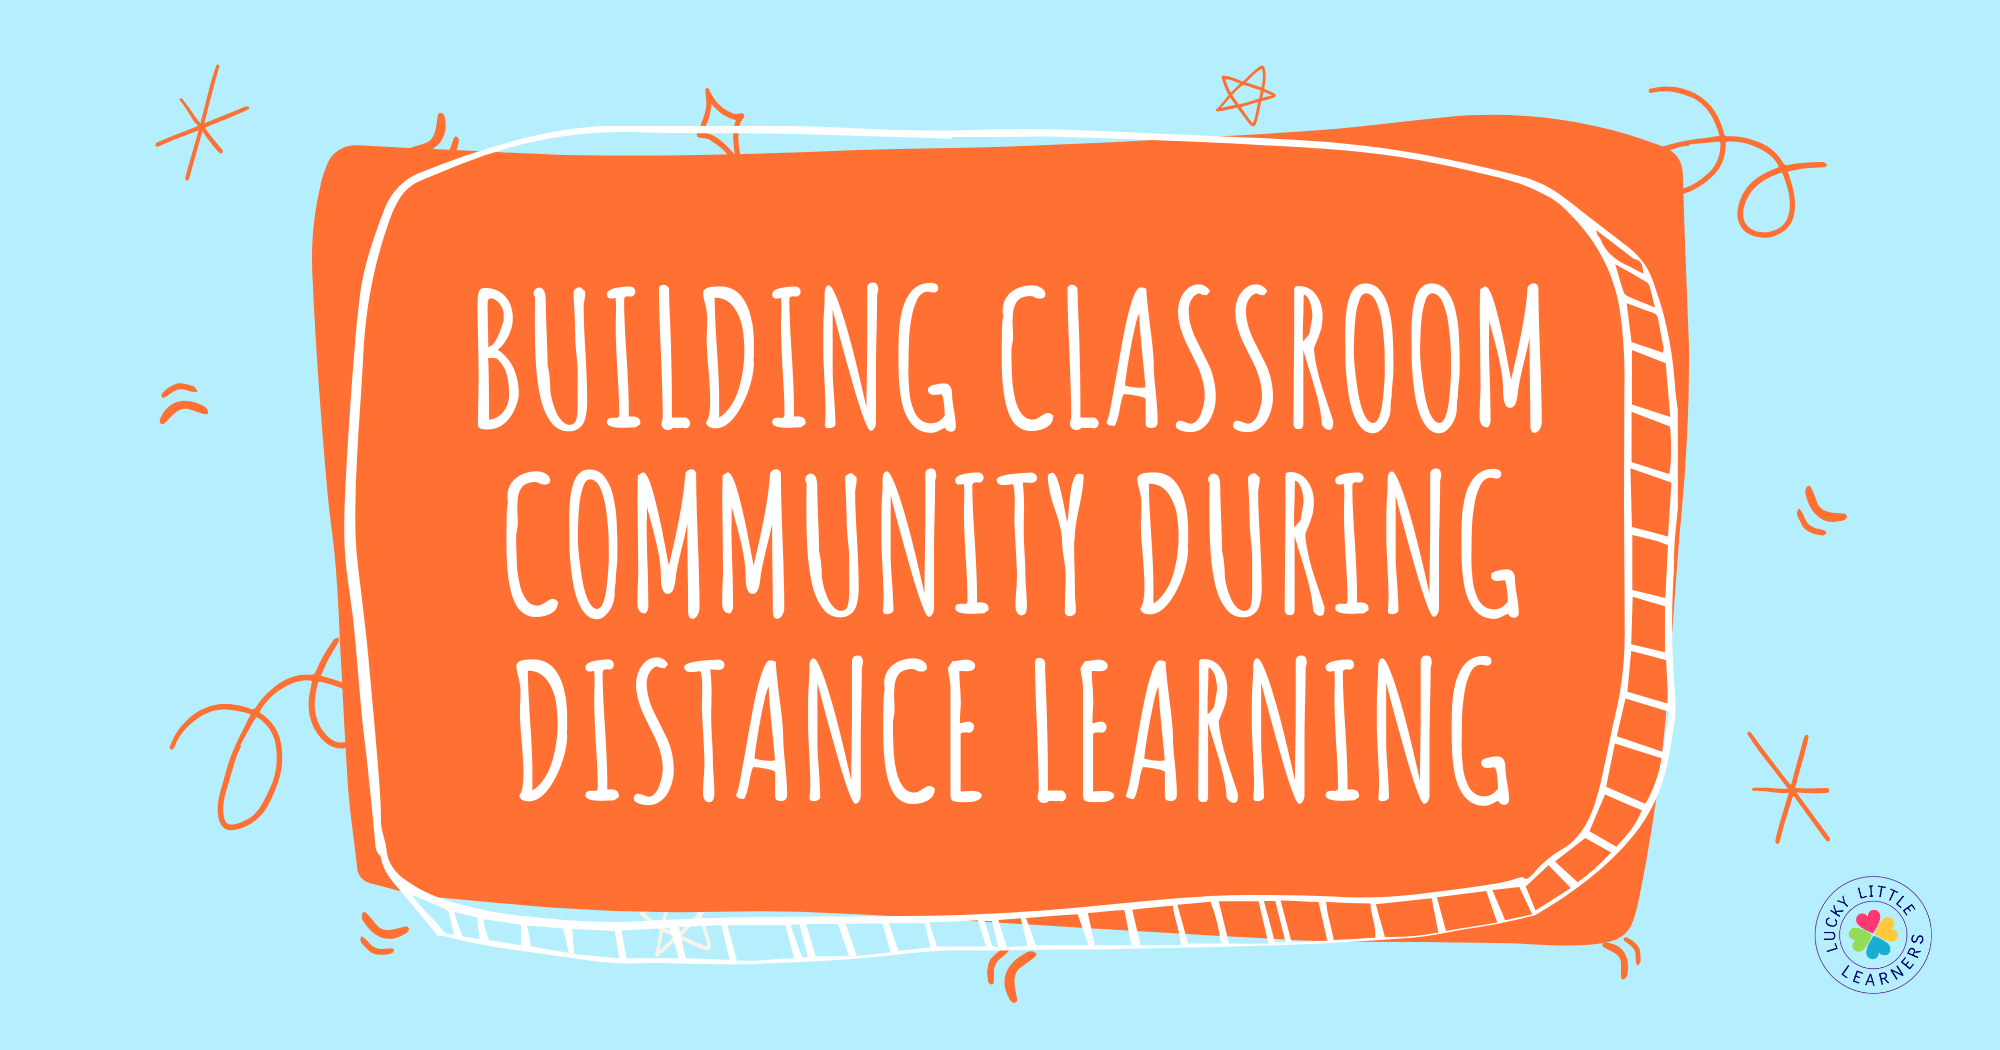 Building Classroom Community during Distance Learning